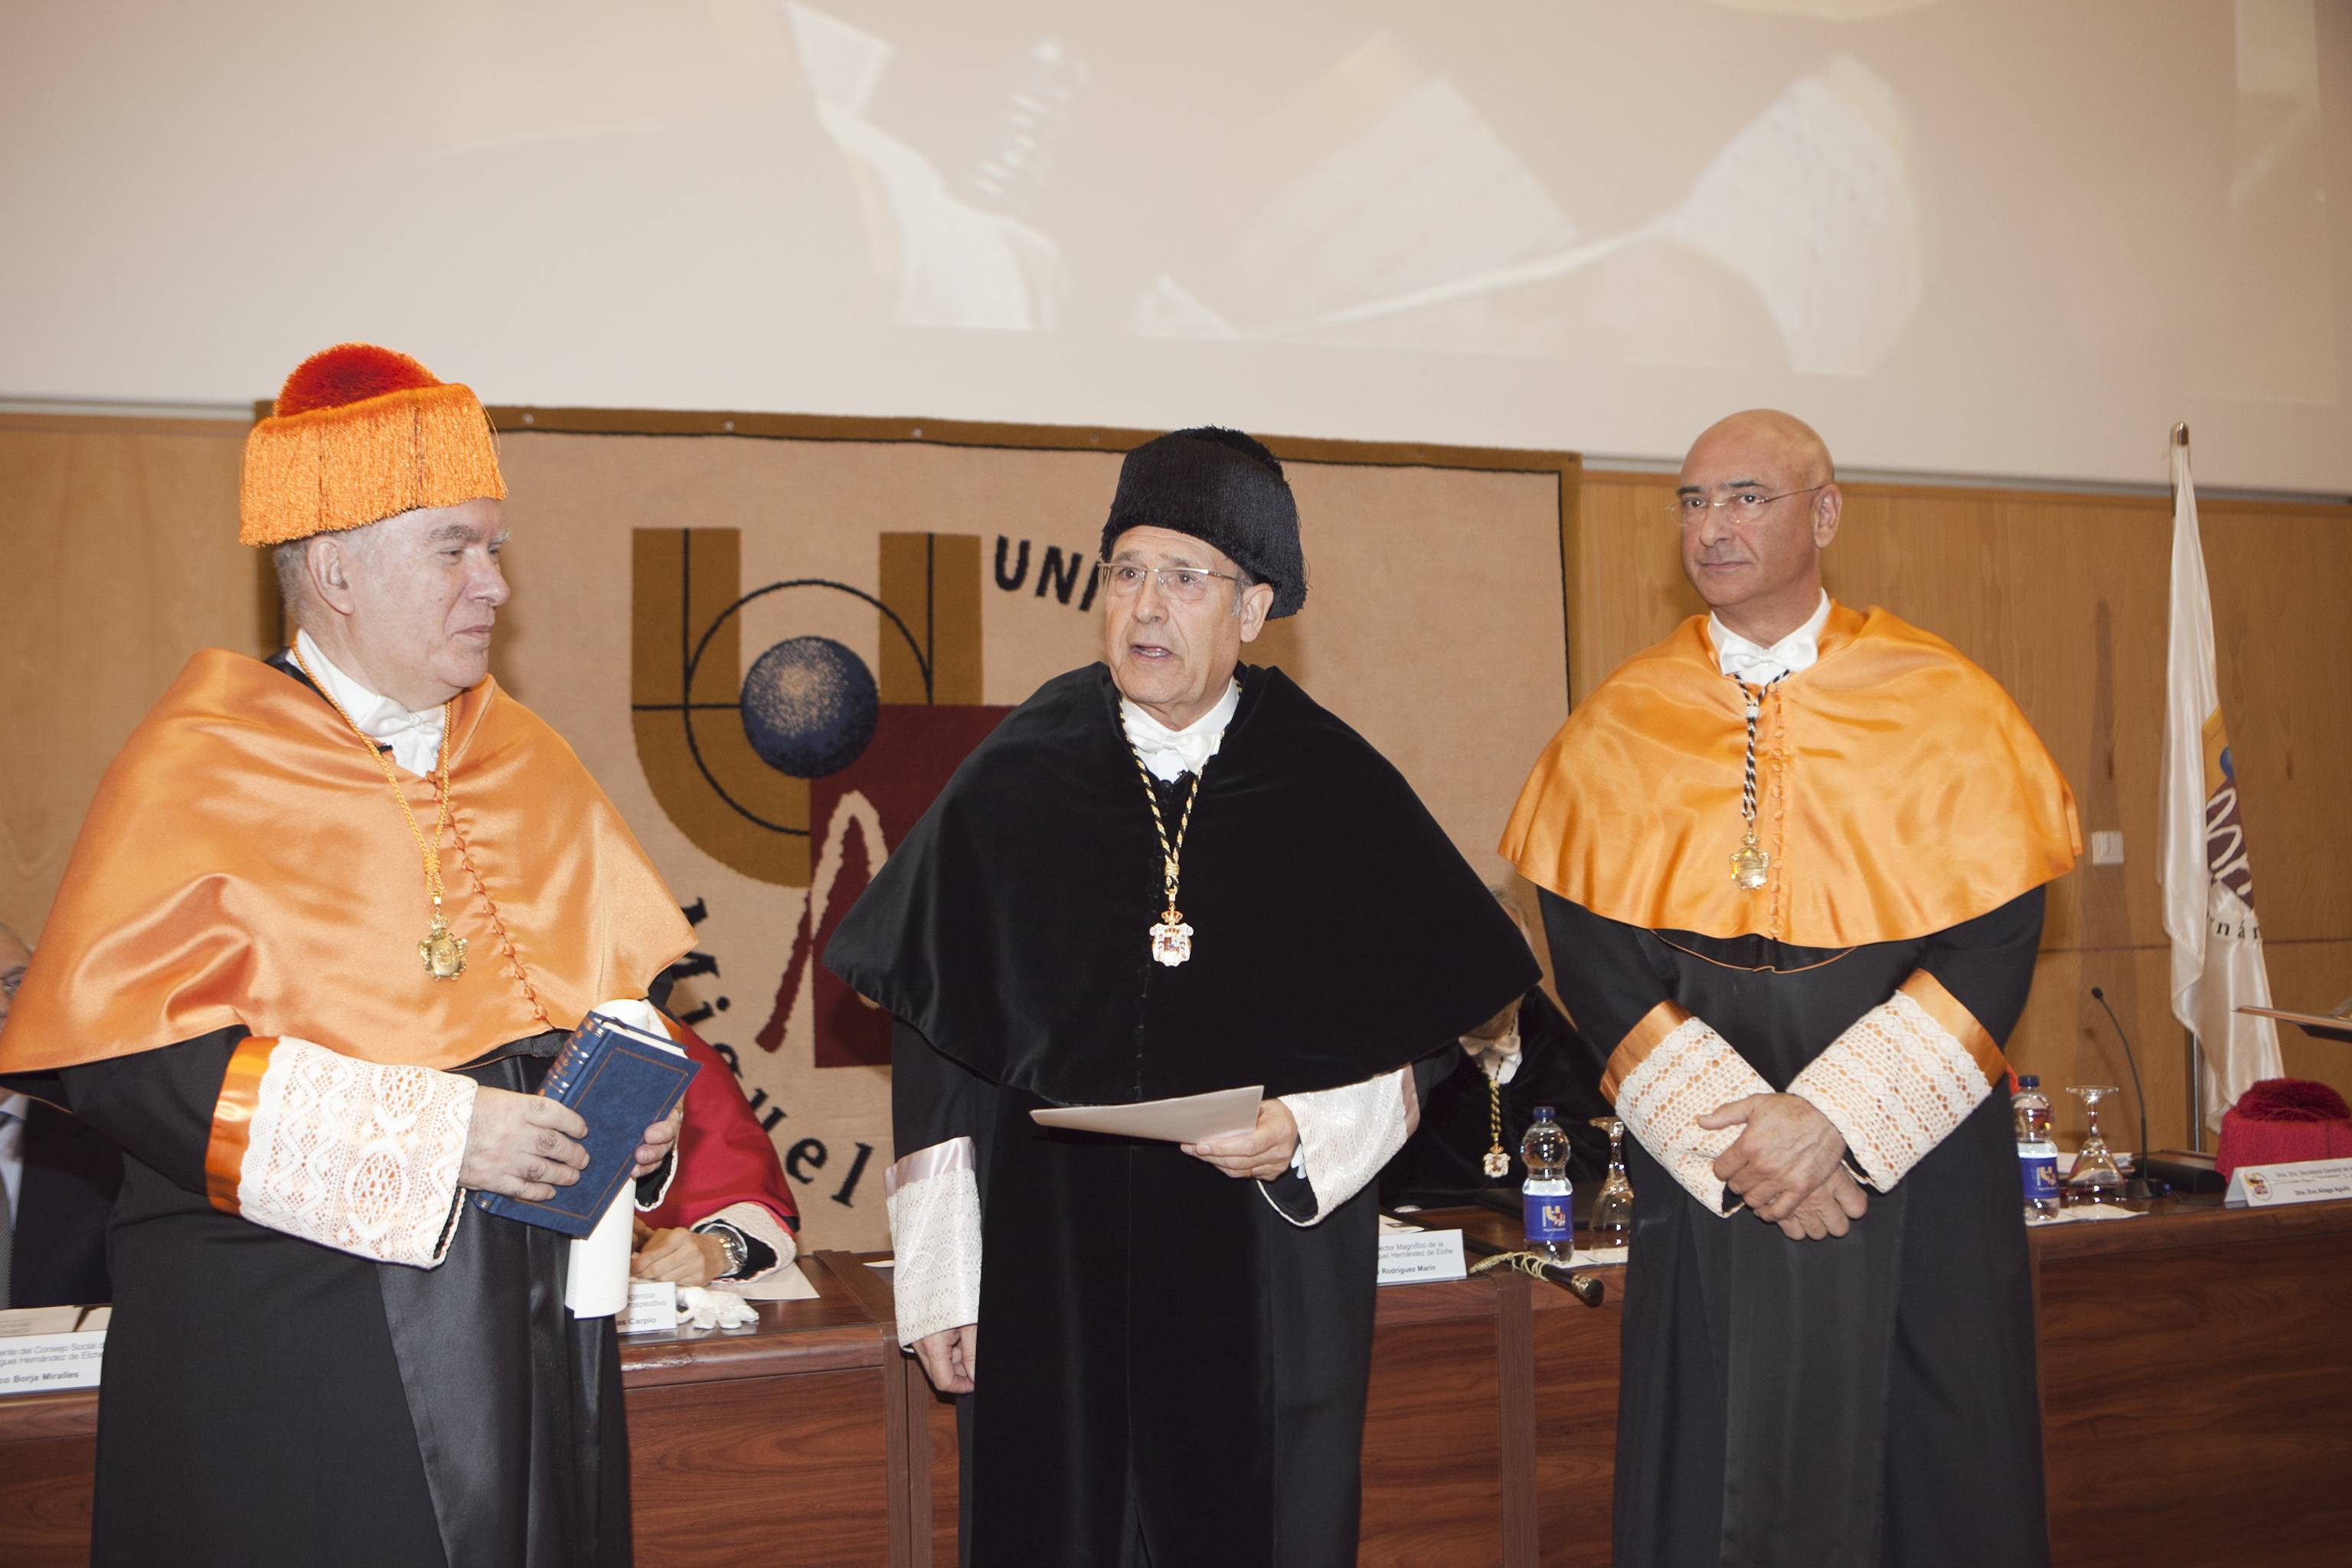 doctor-honoris-causa-luis-gamir_mg_0759.jpg